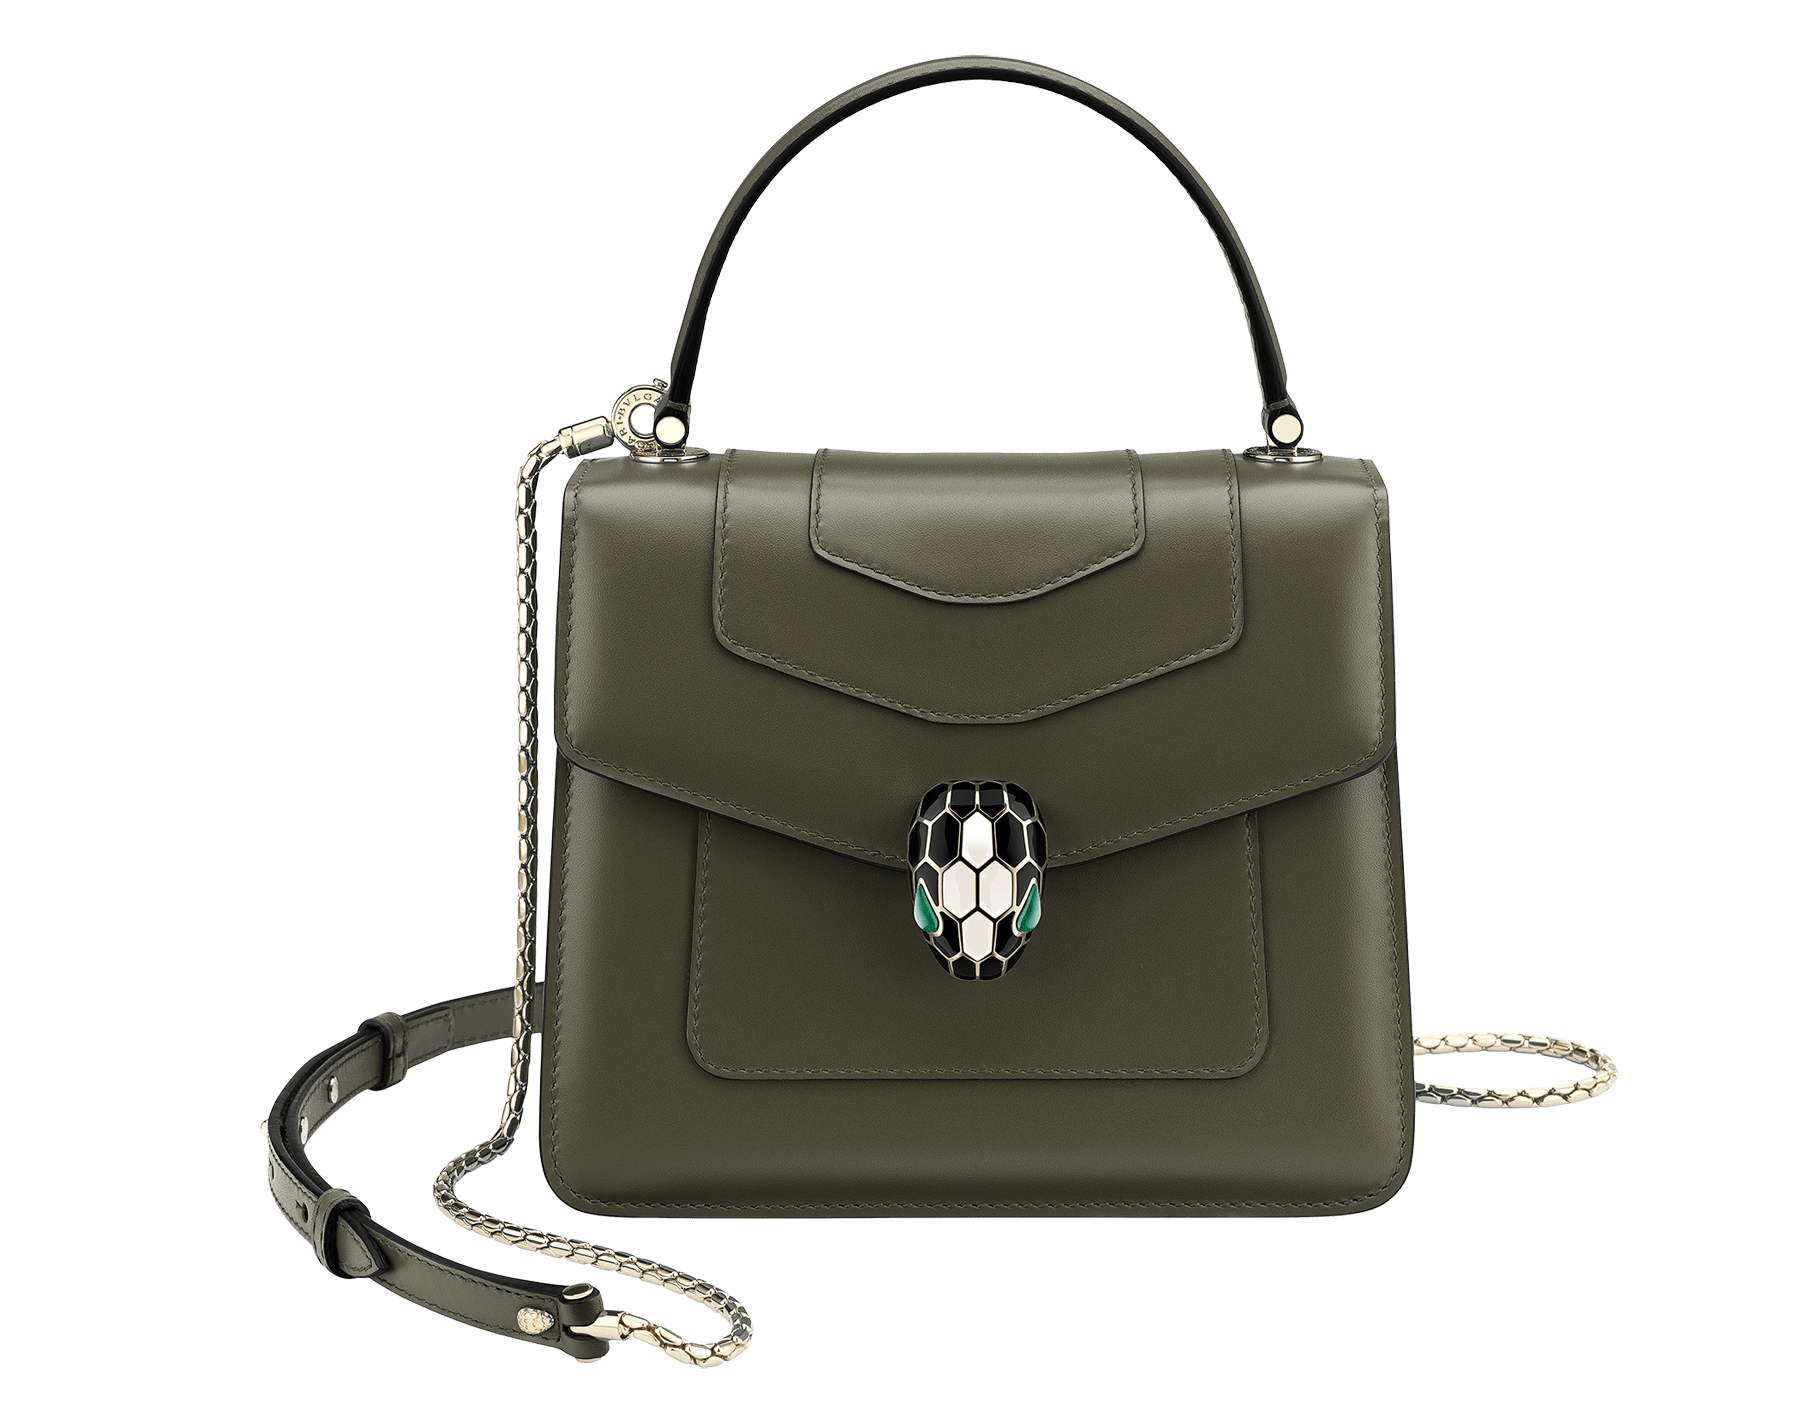 """Serpenti Forever"" crossbody bag in mimetic jade calf leather. Iconic snakehead closure in light gold plated brass enriched with black and white agate enamel and green malachite eyes. 752-CLc image 1"